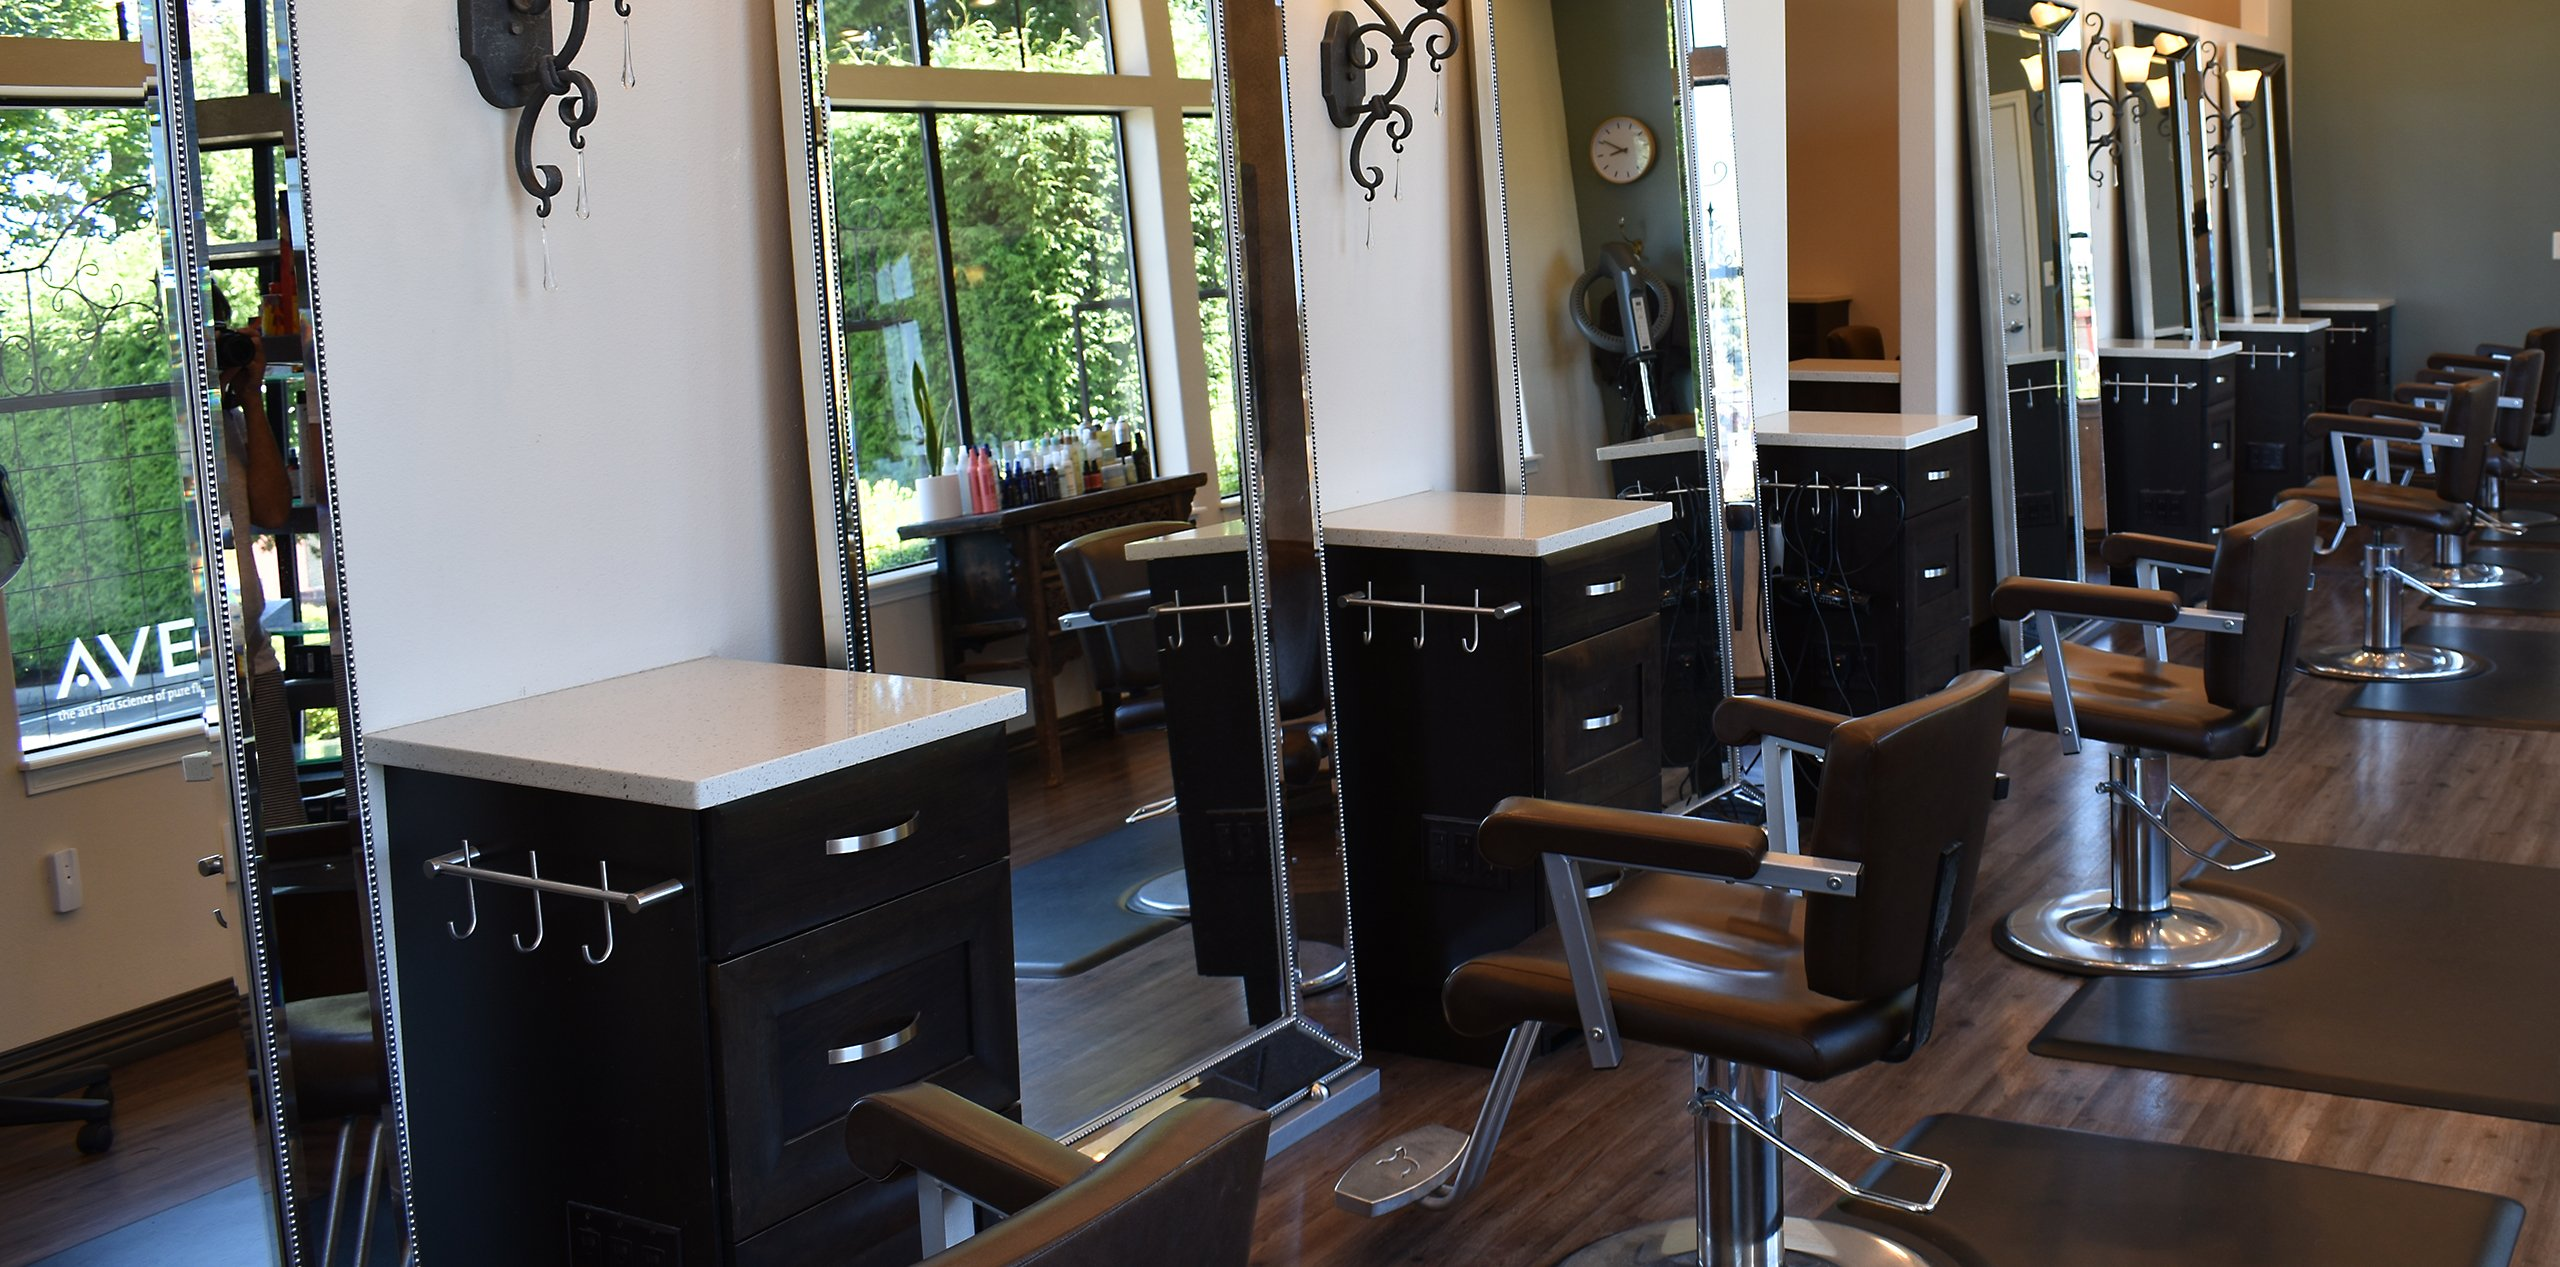 fircrest-proctor-best-hair-salon